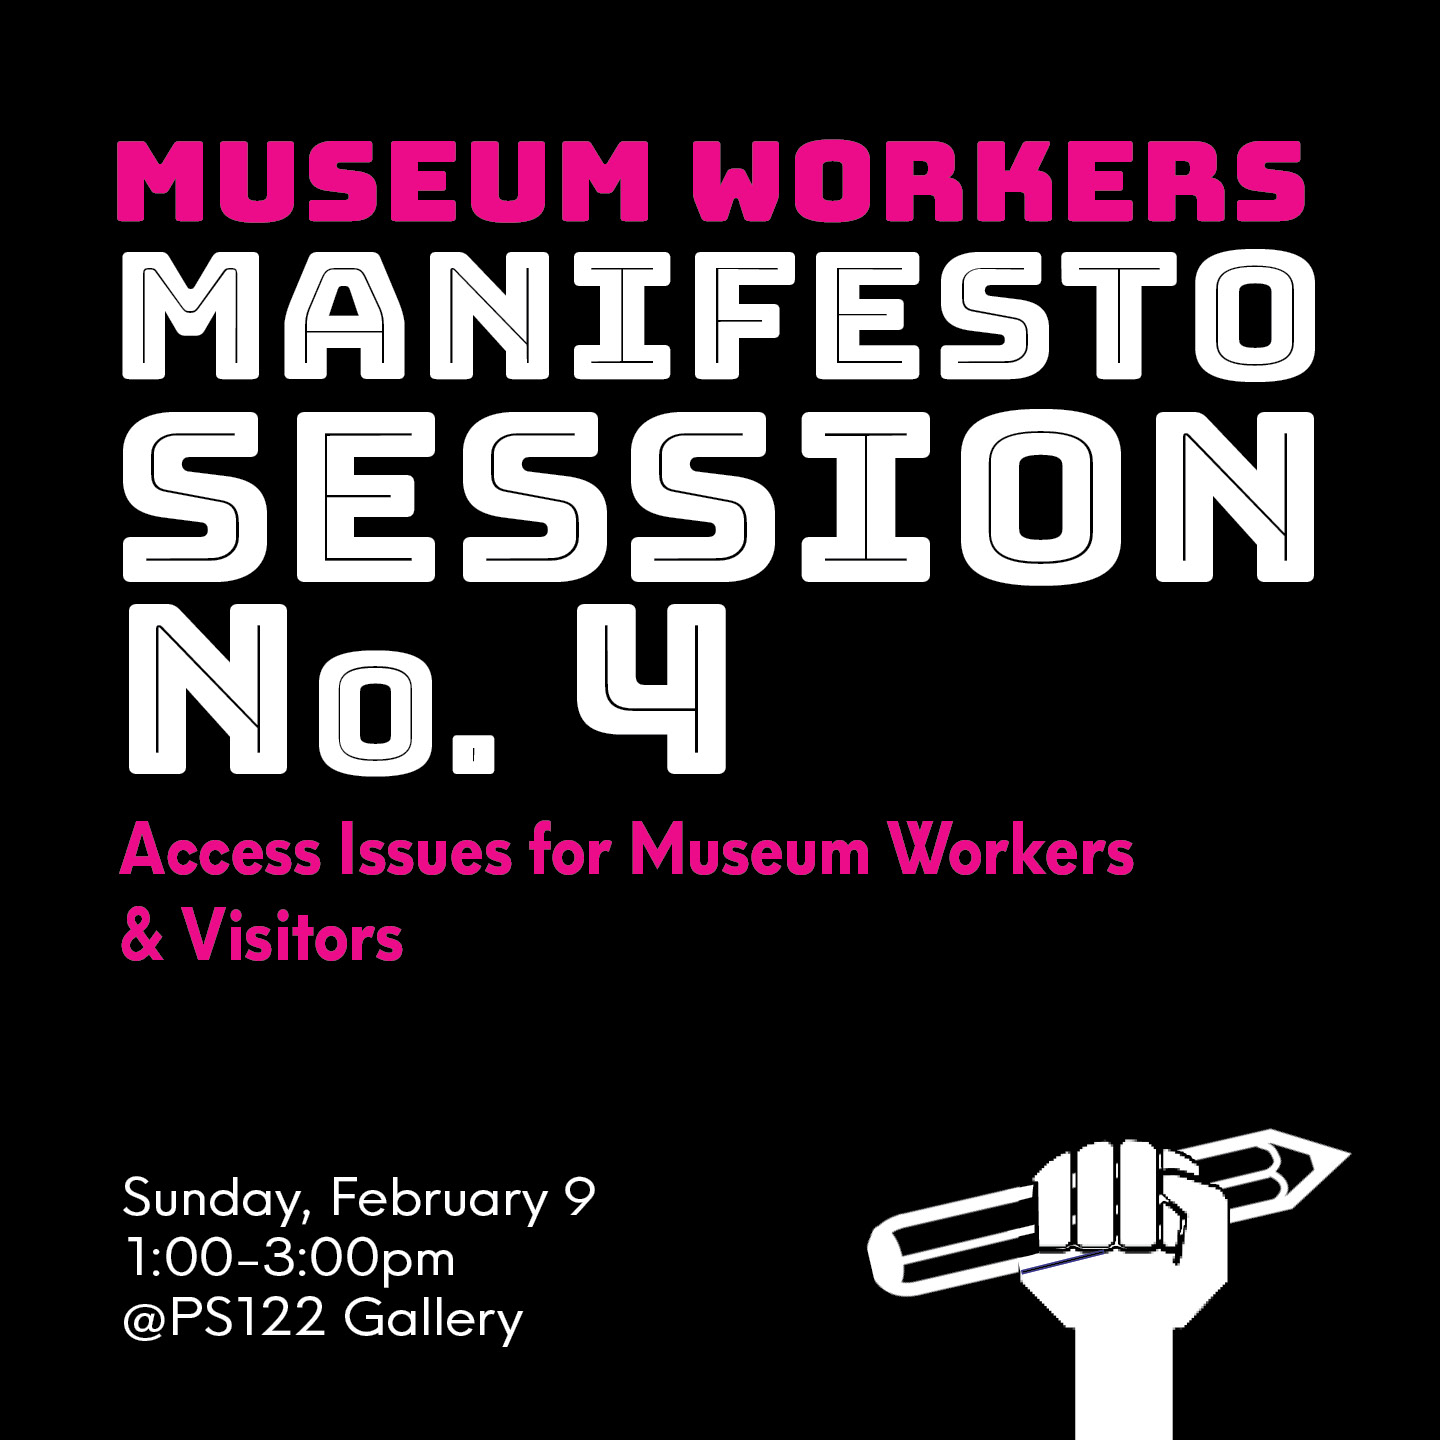 """A mix of white and pink bold text on black background that reads, """"Museum Workers Manifesto Session No. 4, Access Issues for Museum Workers and Visitors. Sunday, February 9, 1:00-3:00pm @PS122 Gallery."""" A silhouetted line drawing of a fist holding a pencil is in the lower right corner"""